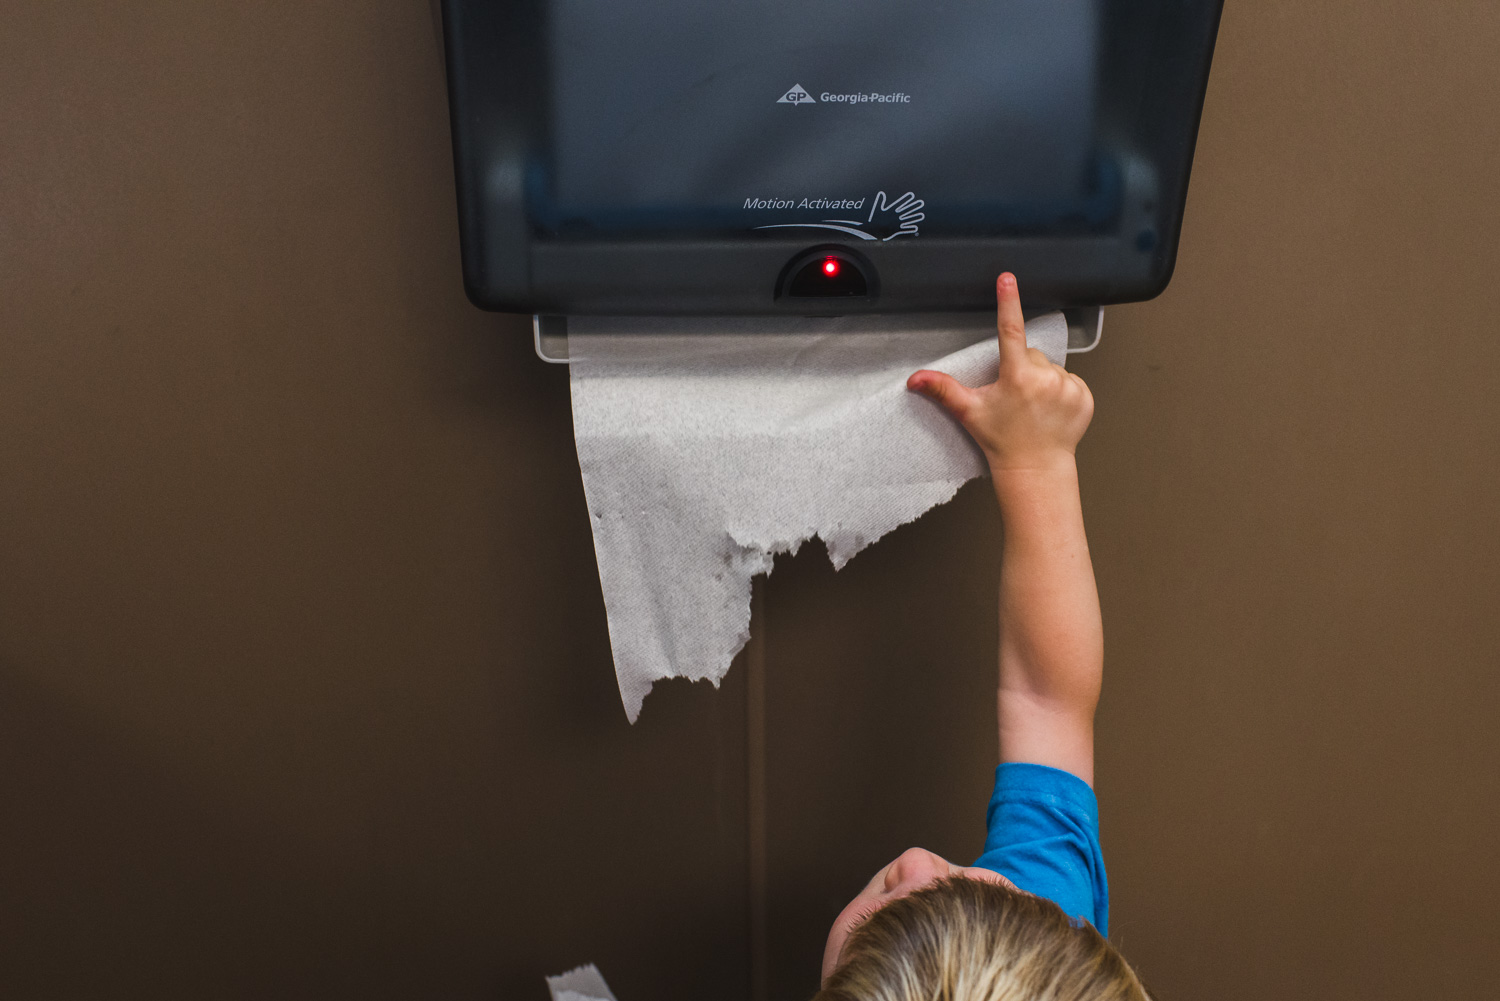 Little boy playing with automatic paper towel dispenser.